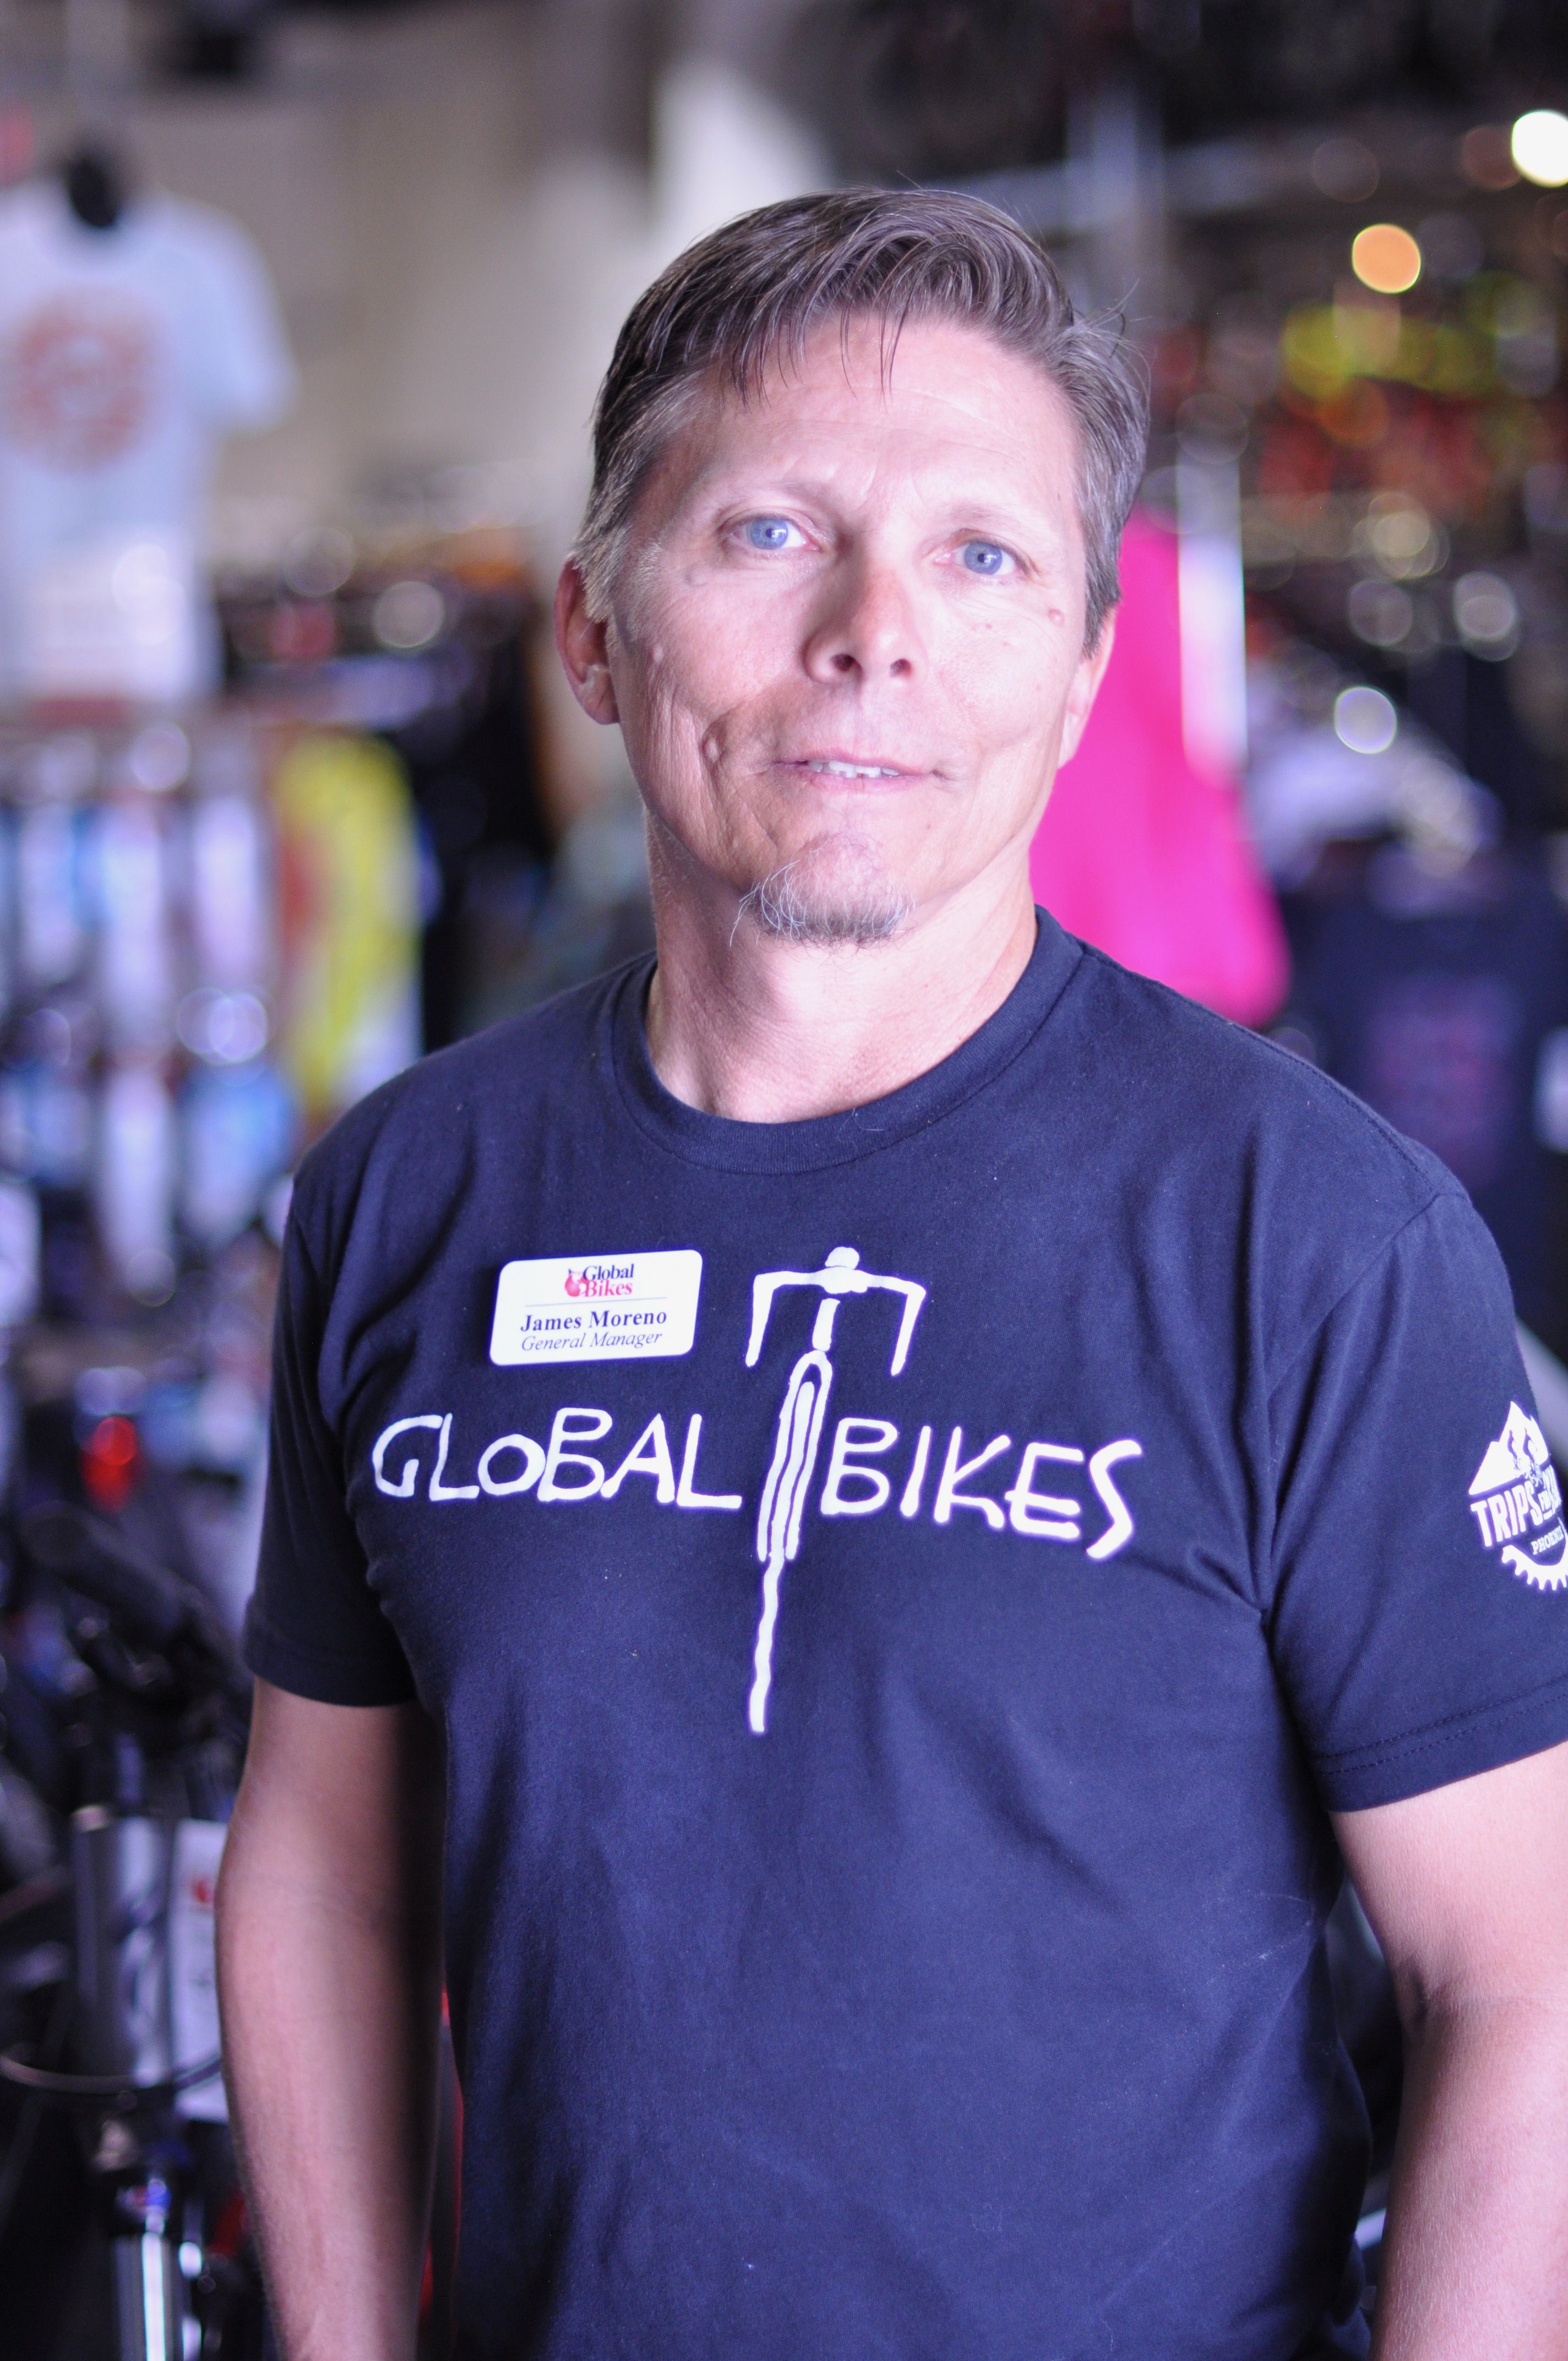 Global Bikes in Ahwatukee, AZ has everything you need to